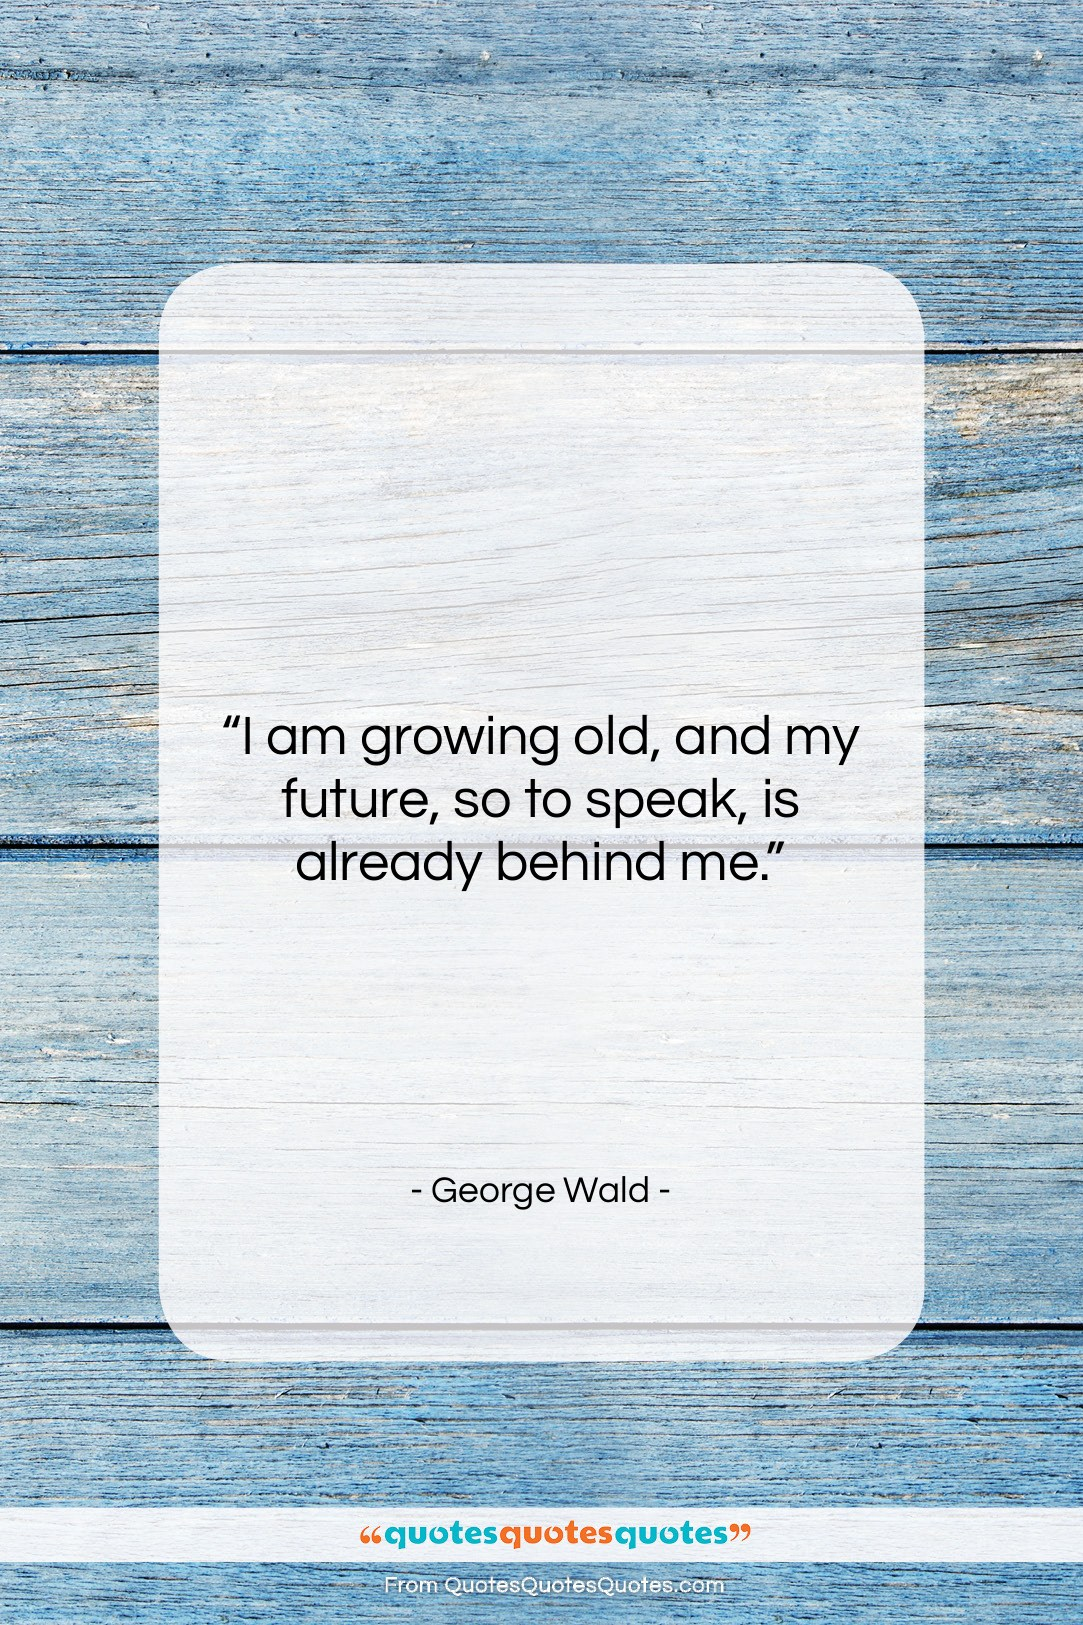 """George Wald quote: """"I am growing old, and my future,…""""- at QuotesQuotesQuotes.com"""